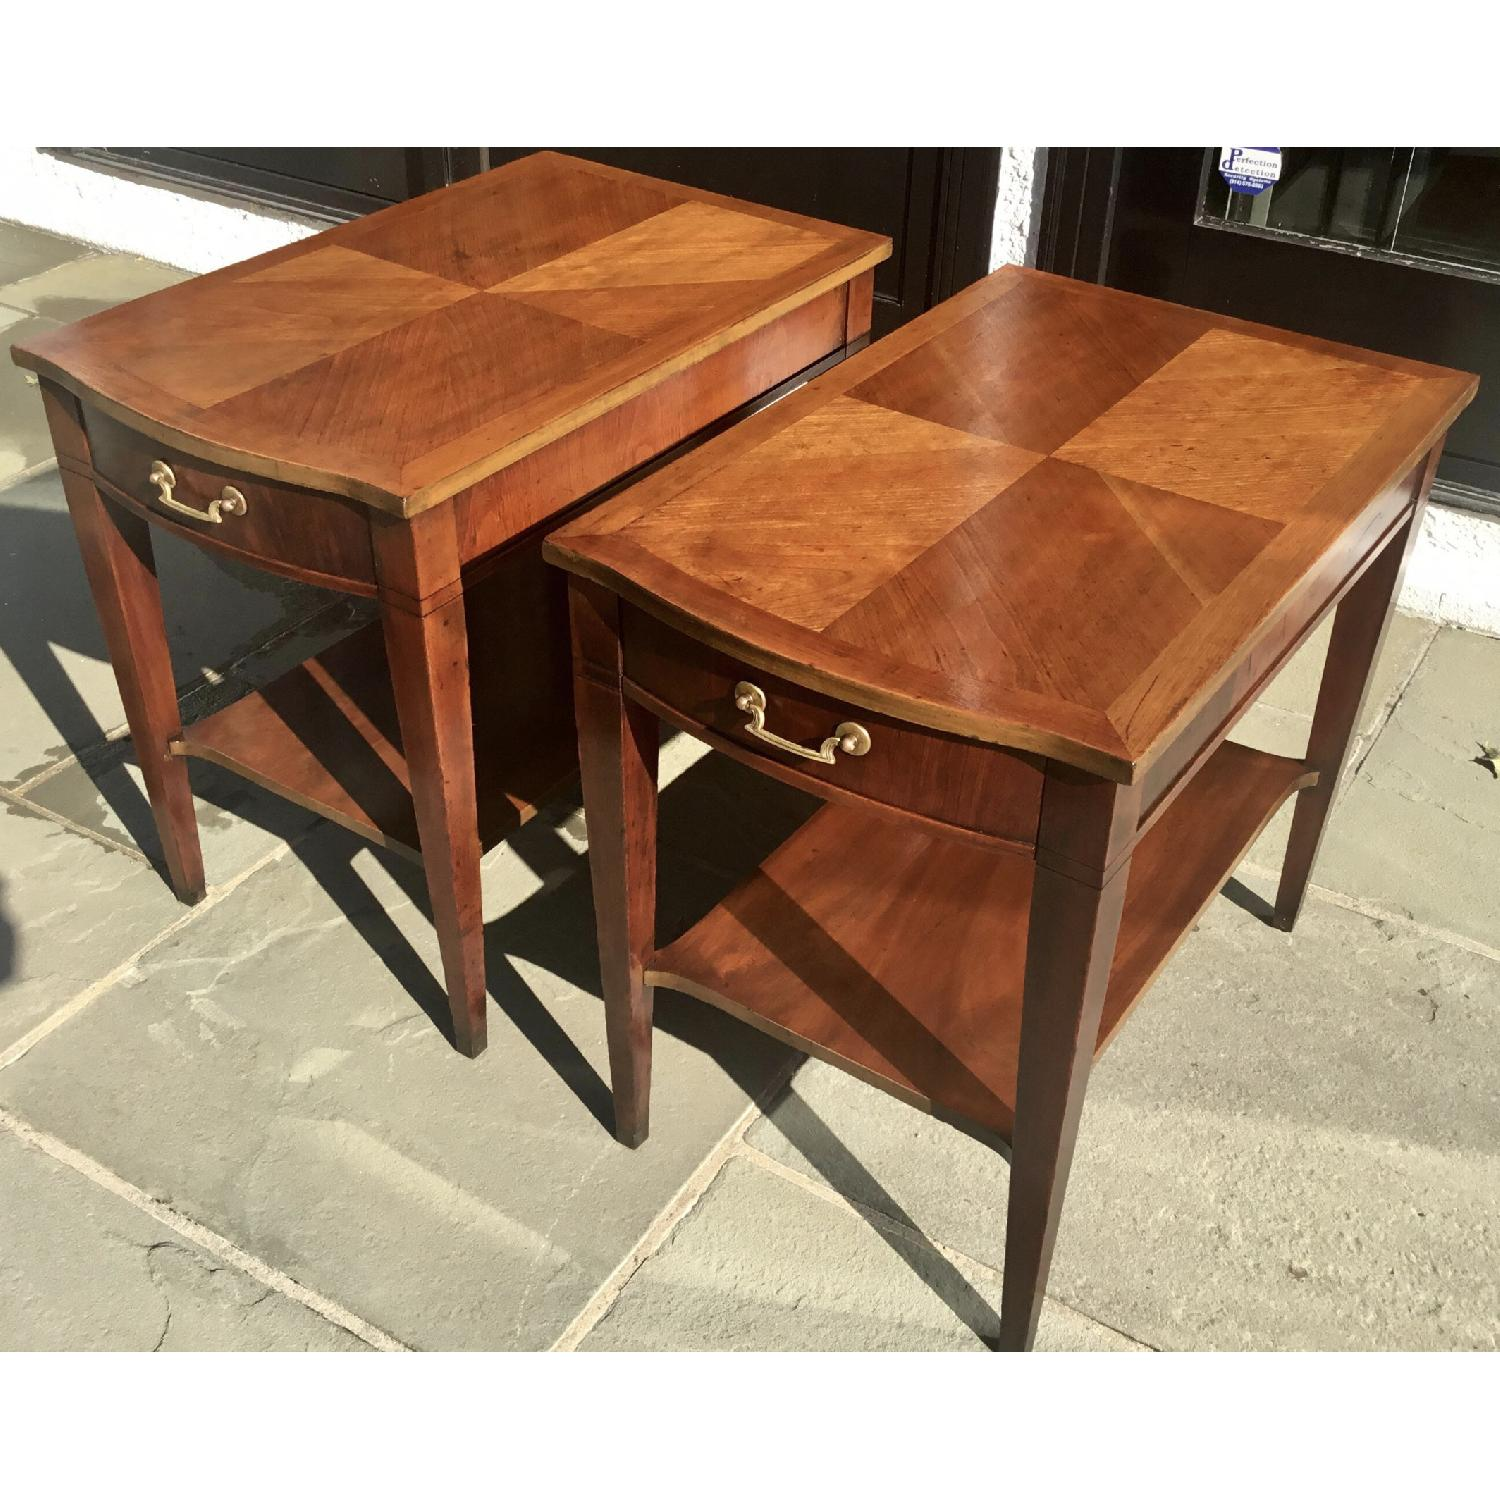 Midmod White Furniture Co. Parquet Top Walnut Side Tables - image-1